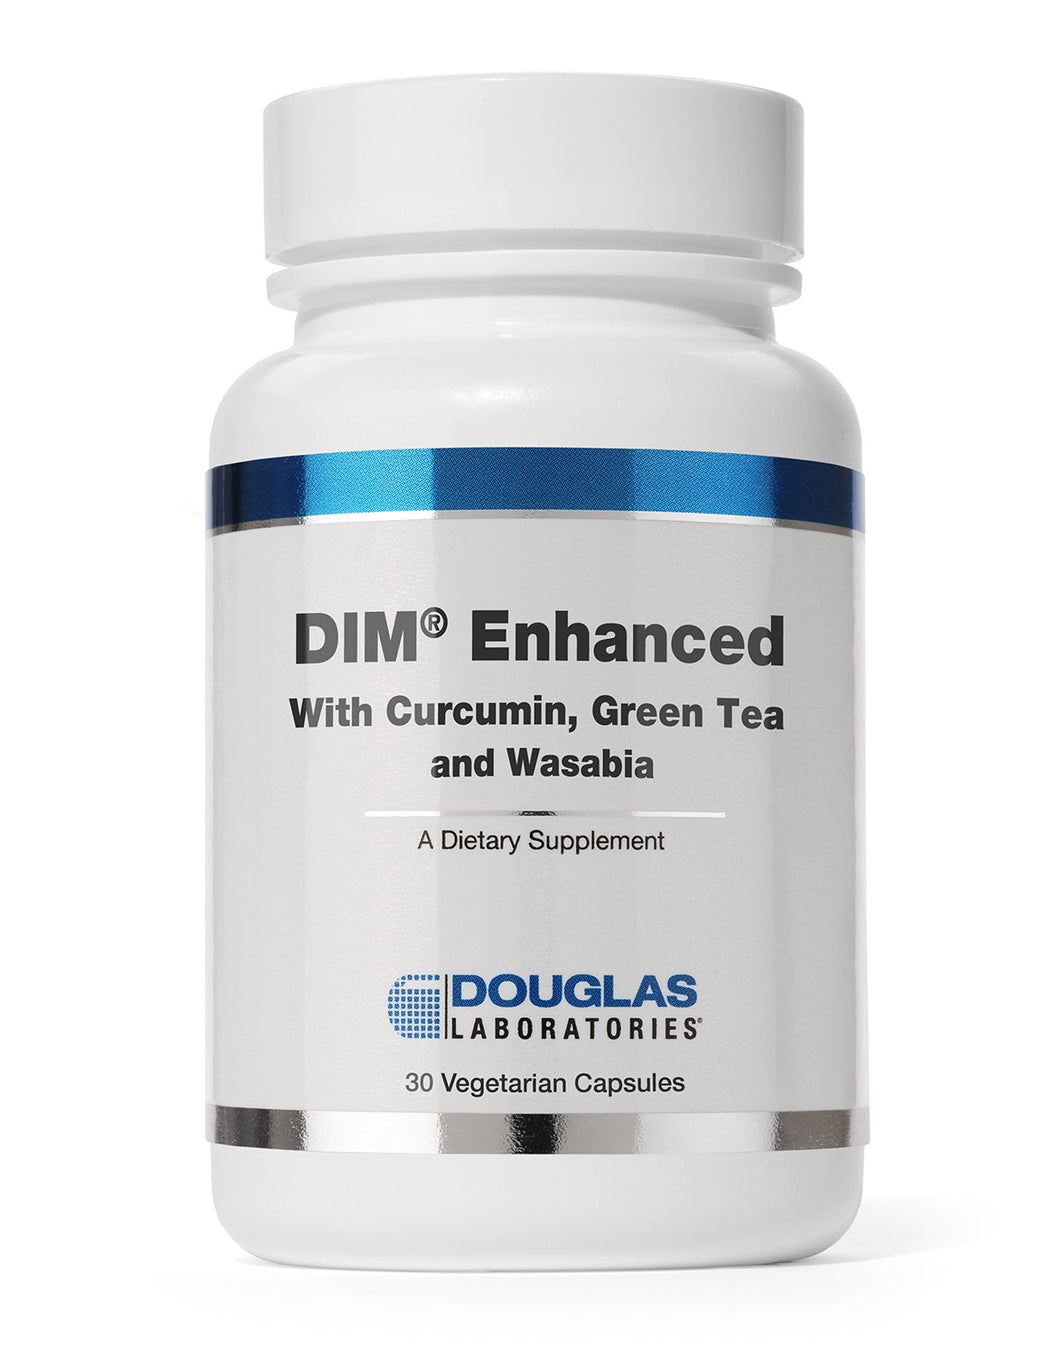 DIM ENHANCED 30 Vegetarian Capsules Douglas Laboratories